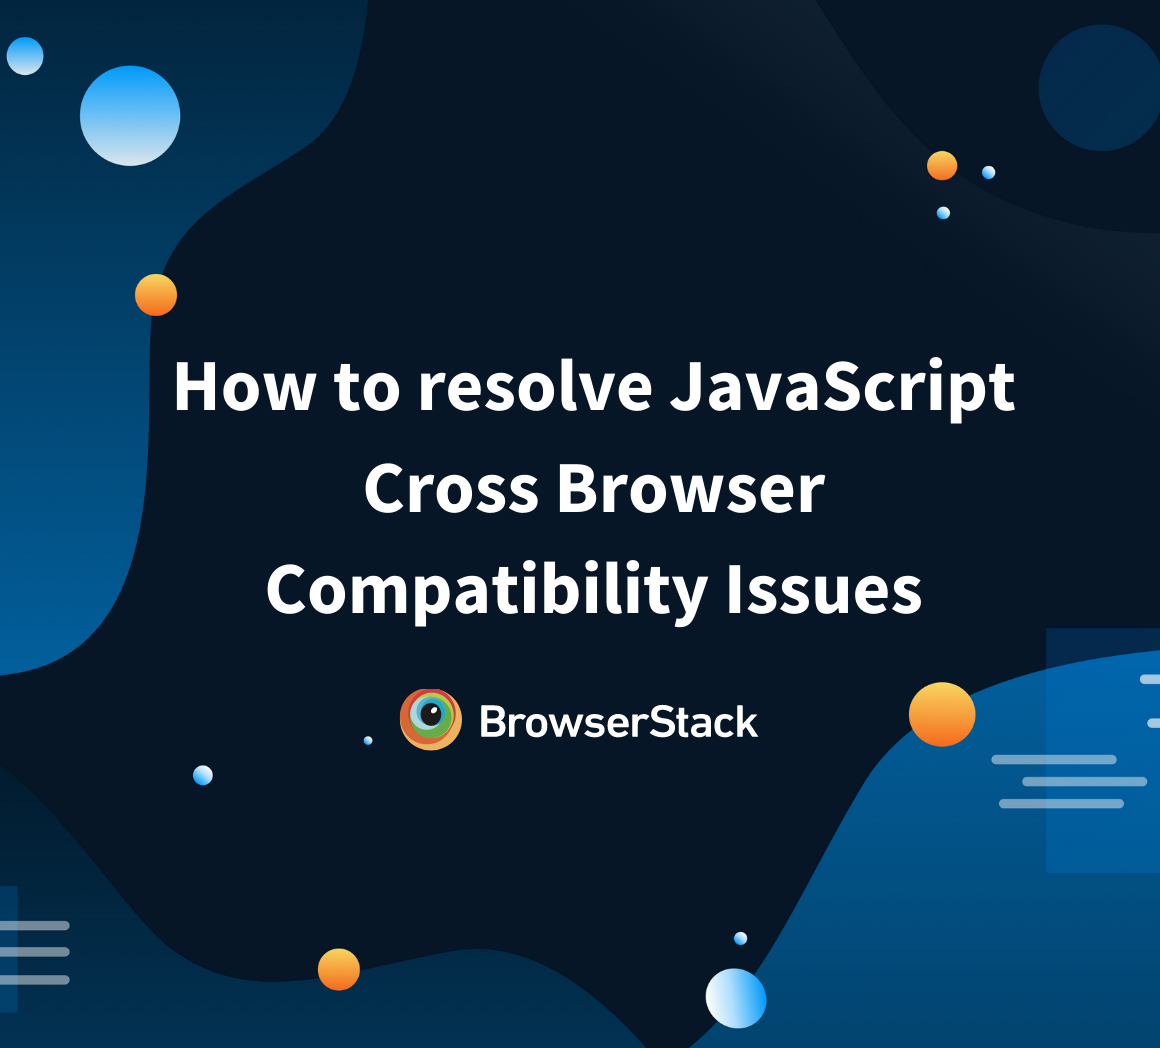 Common JavaScript Cross Browser Compatibility Issues and how to solve them